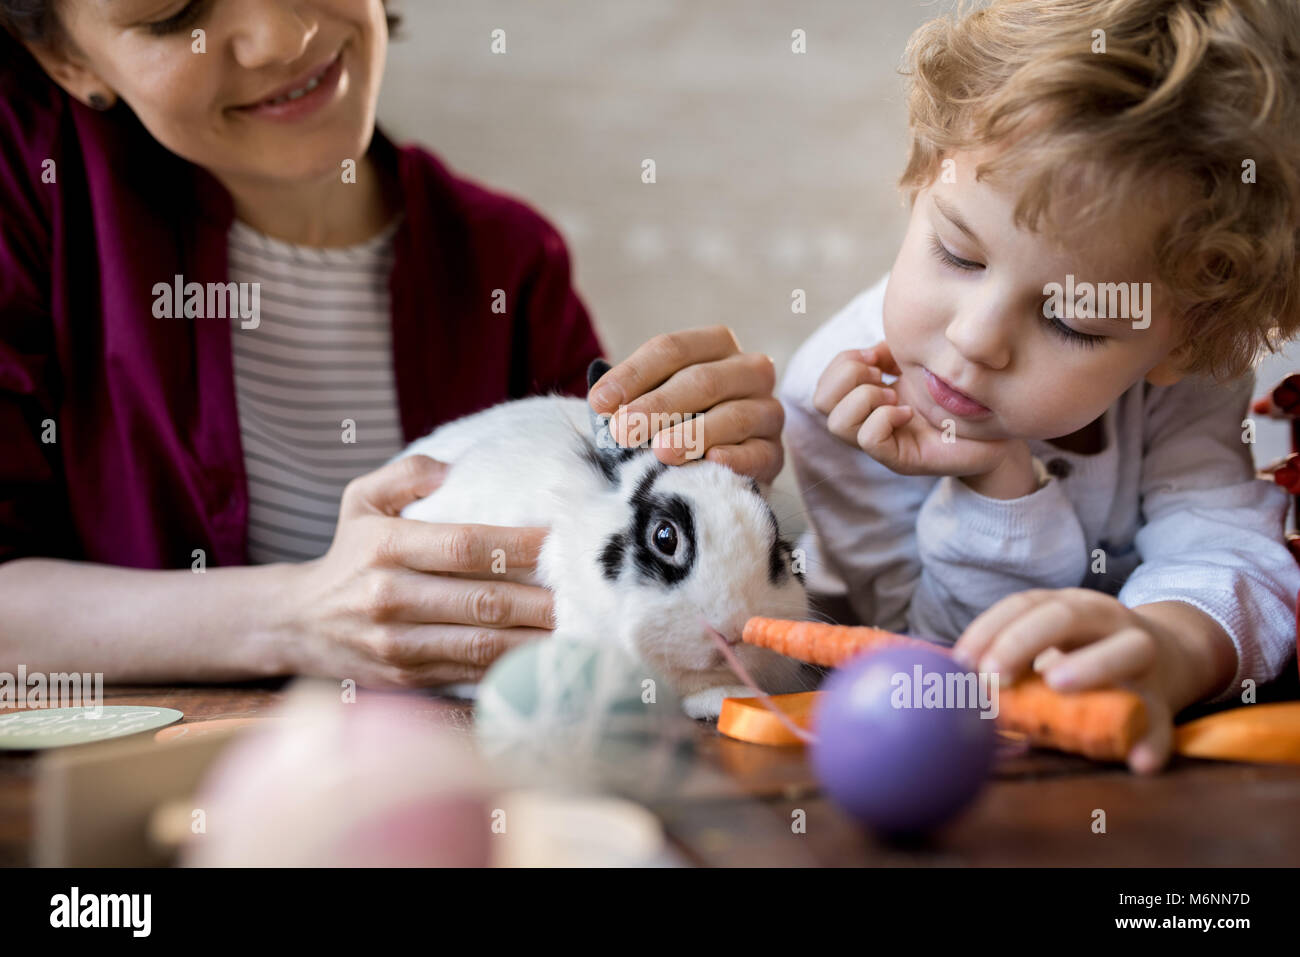 Little Boy Feeding Pet Bunny - Stock Image